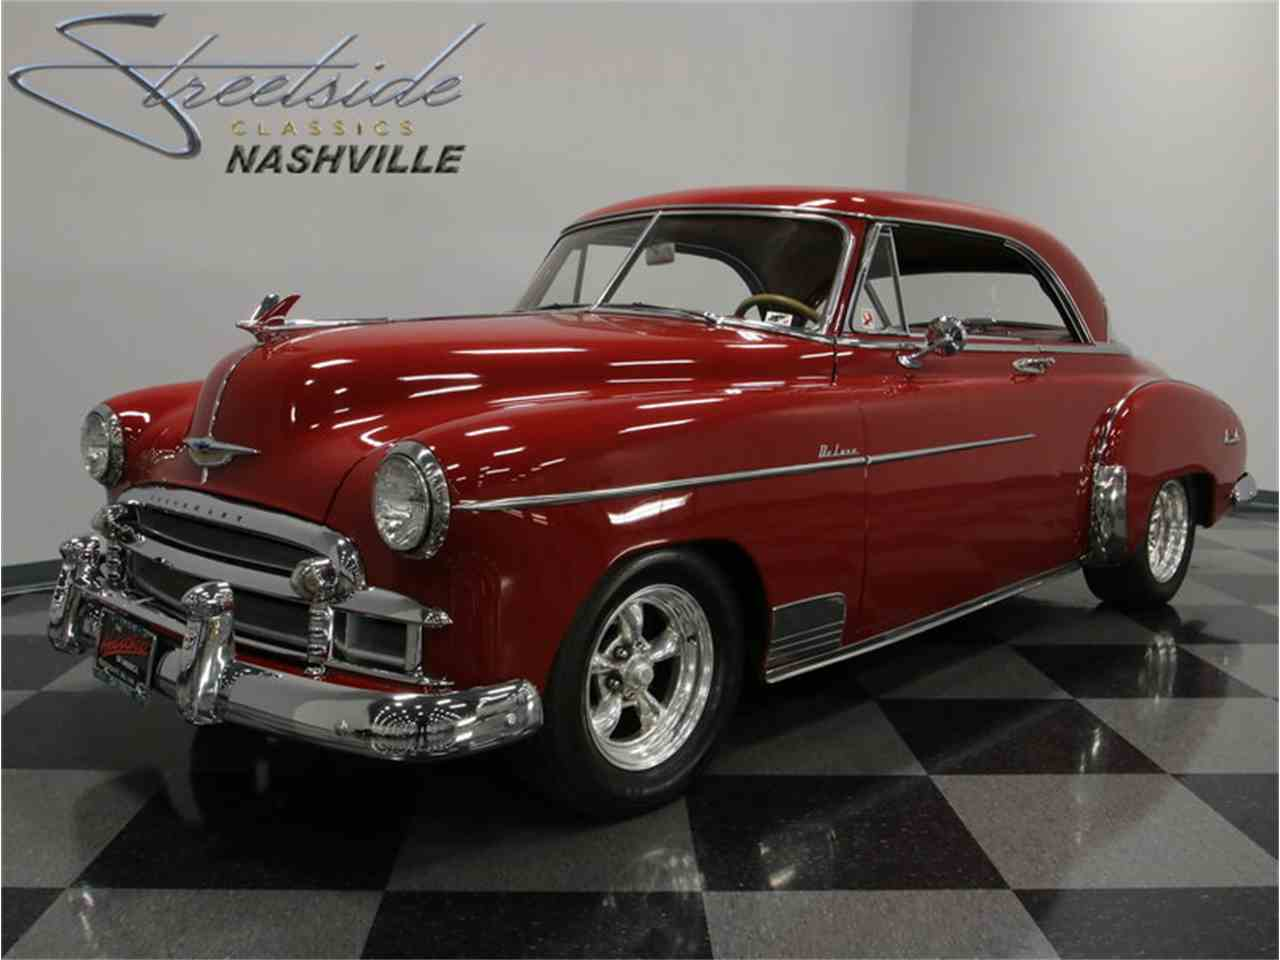 Chevrolet bel air hardtop for sale upcoming chevrolet - 1950 Chevrolet Bel Air 874310